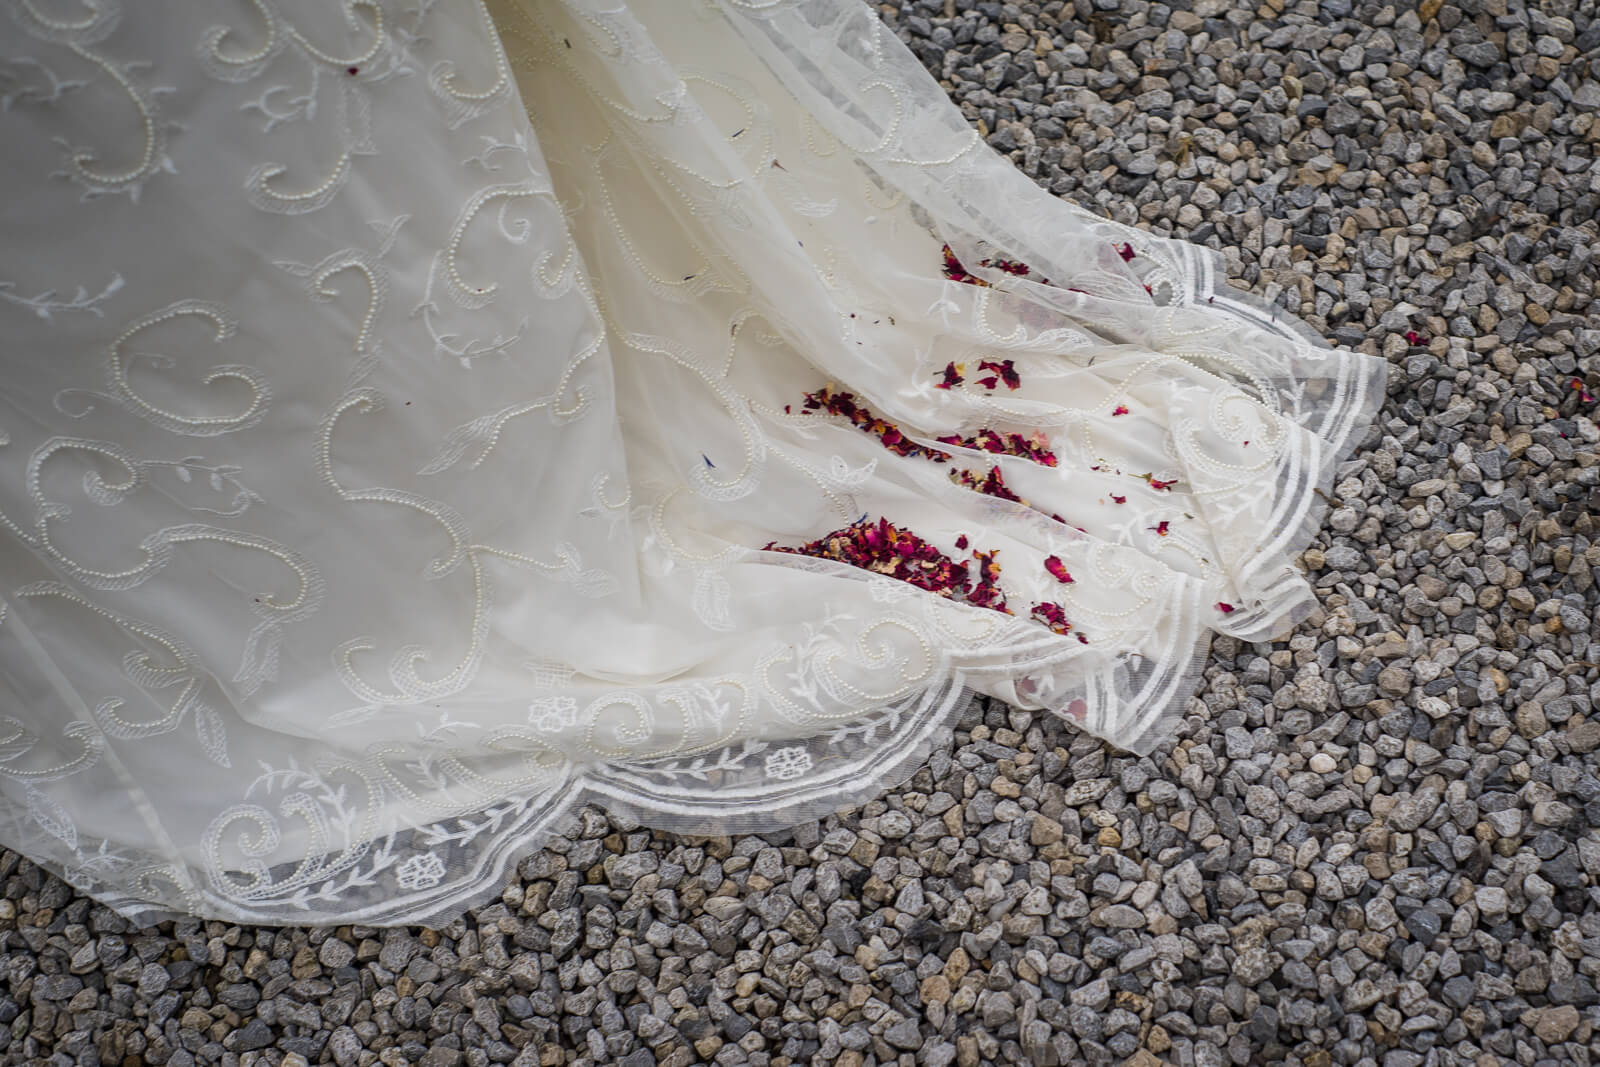 Bride's train against gravel with dried petal confetti on it